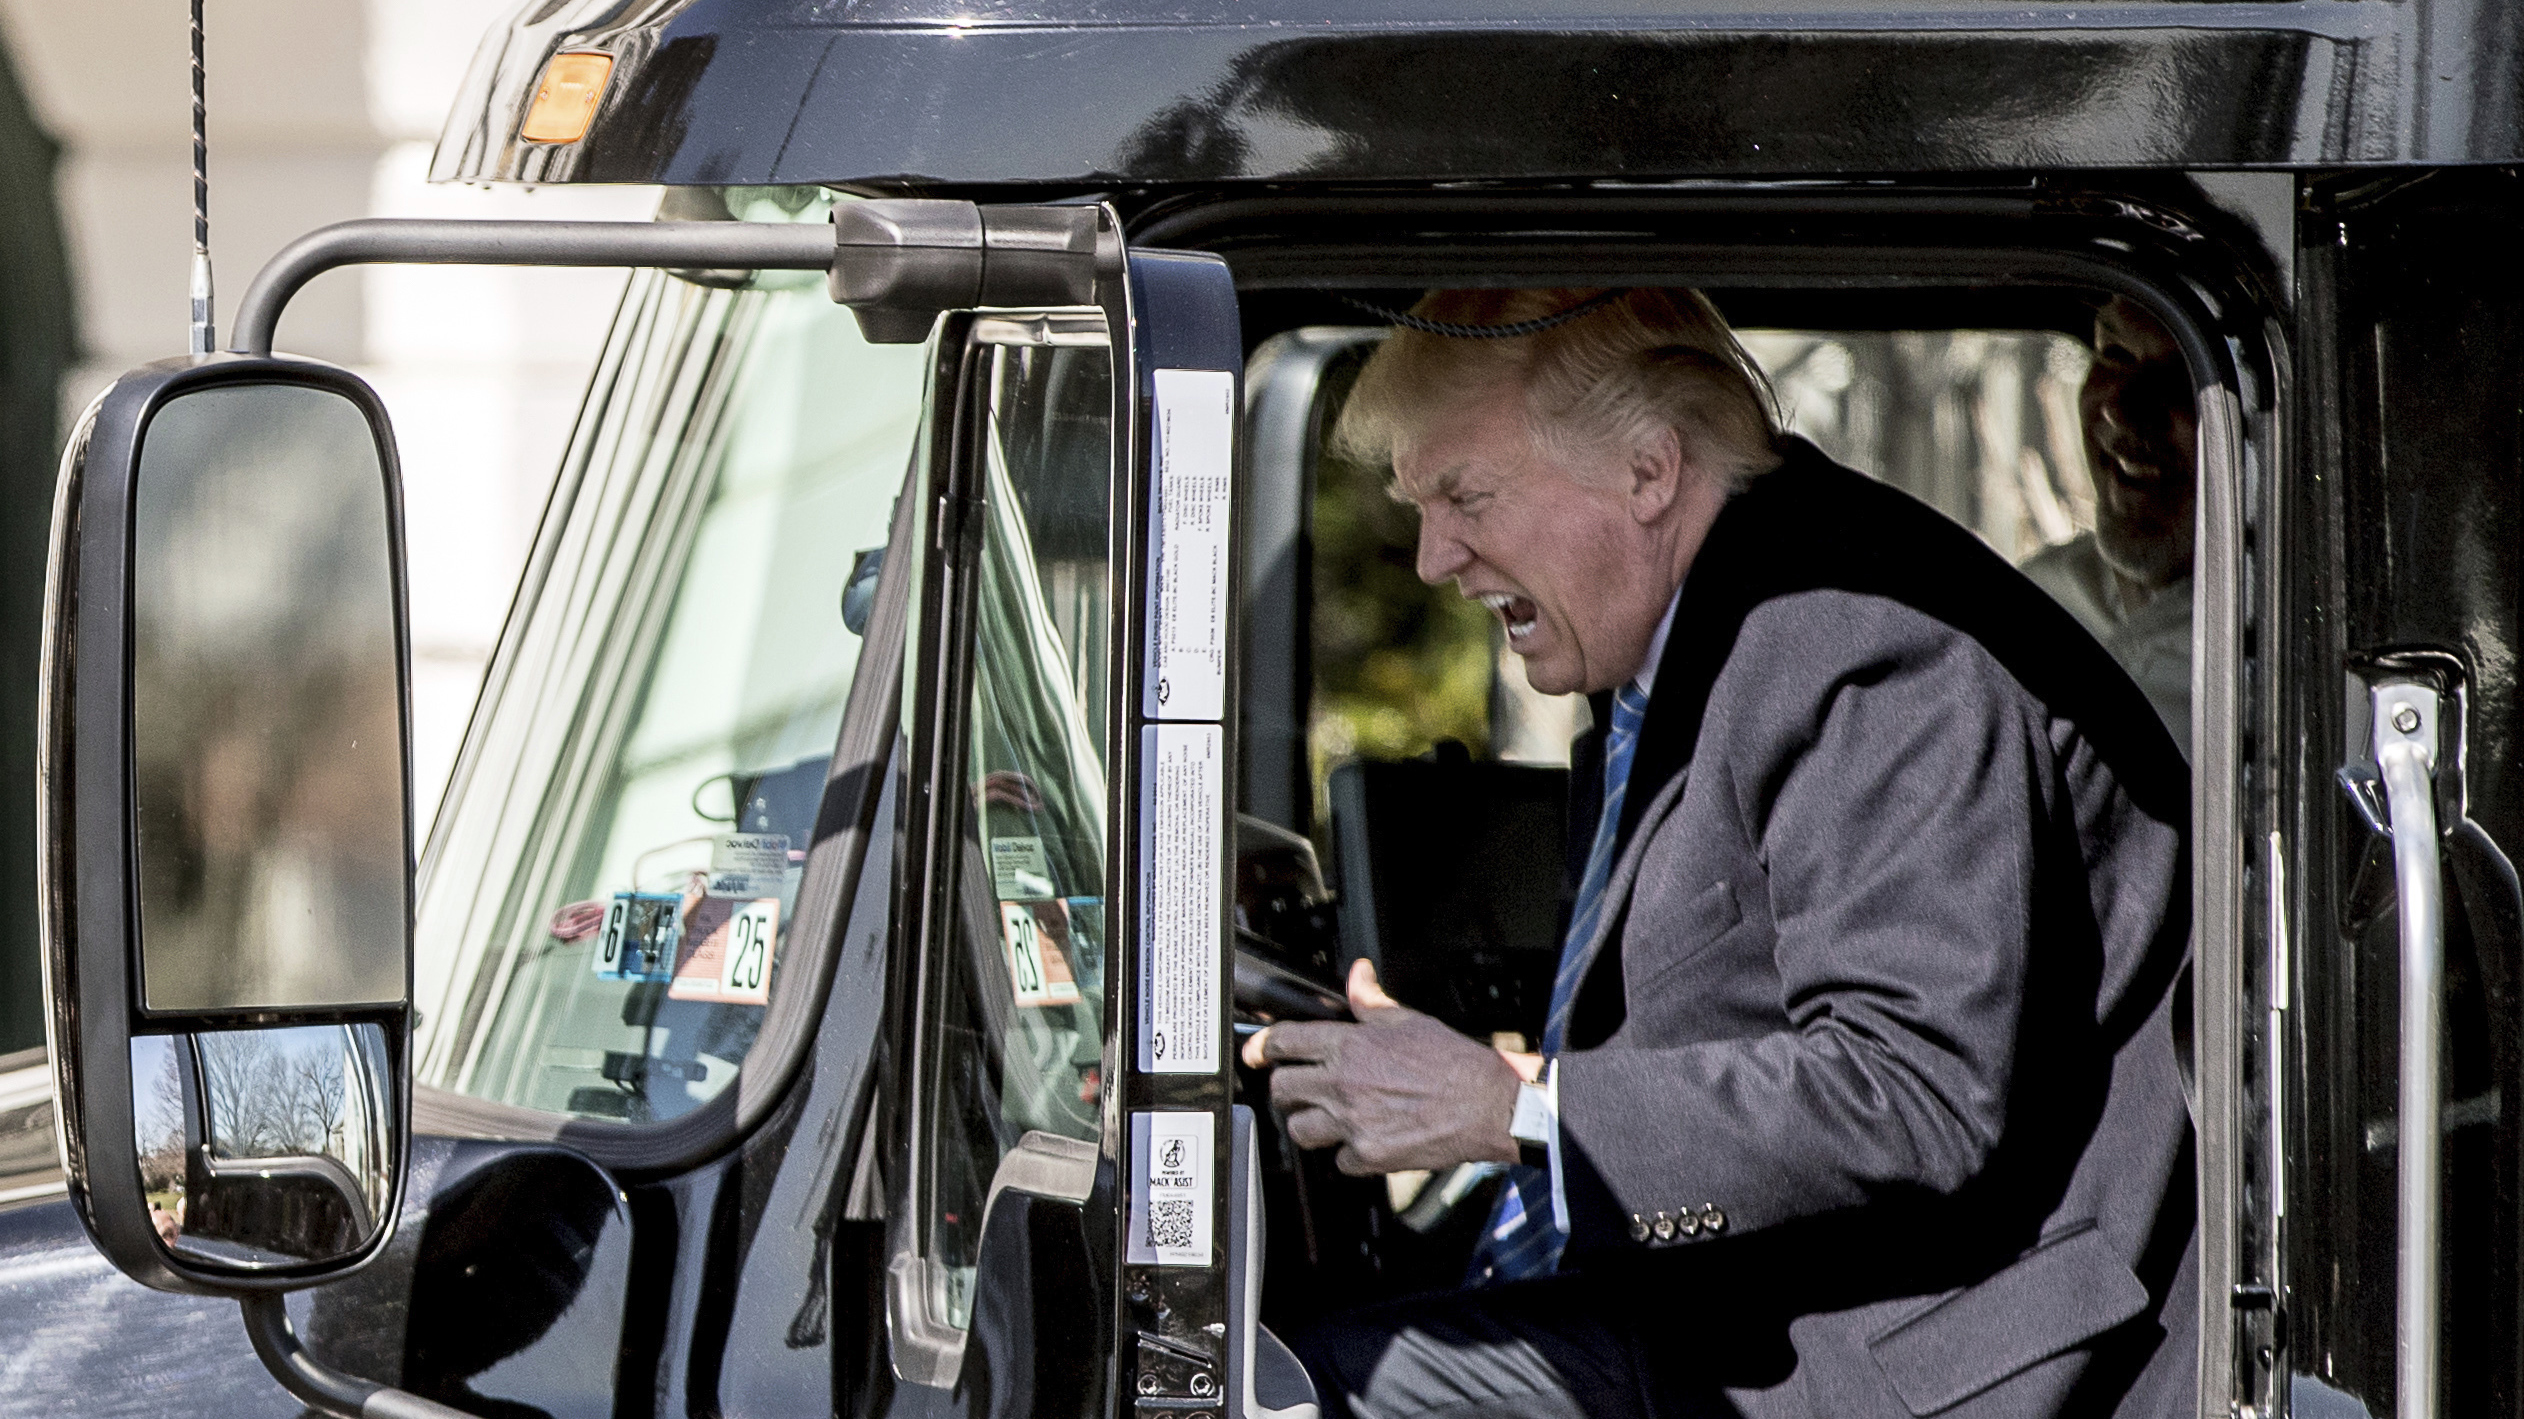 Trump meets trucking executives and has the time of his life